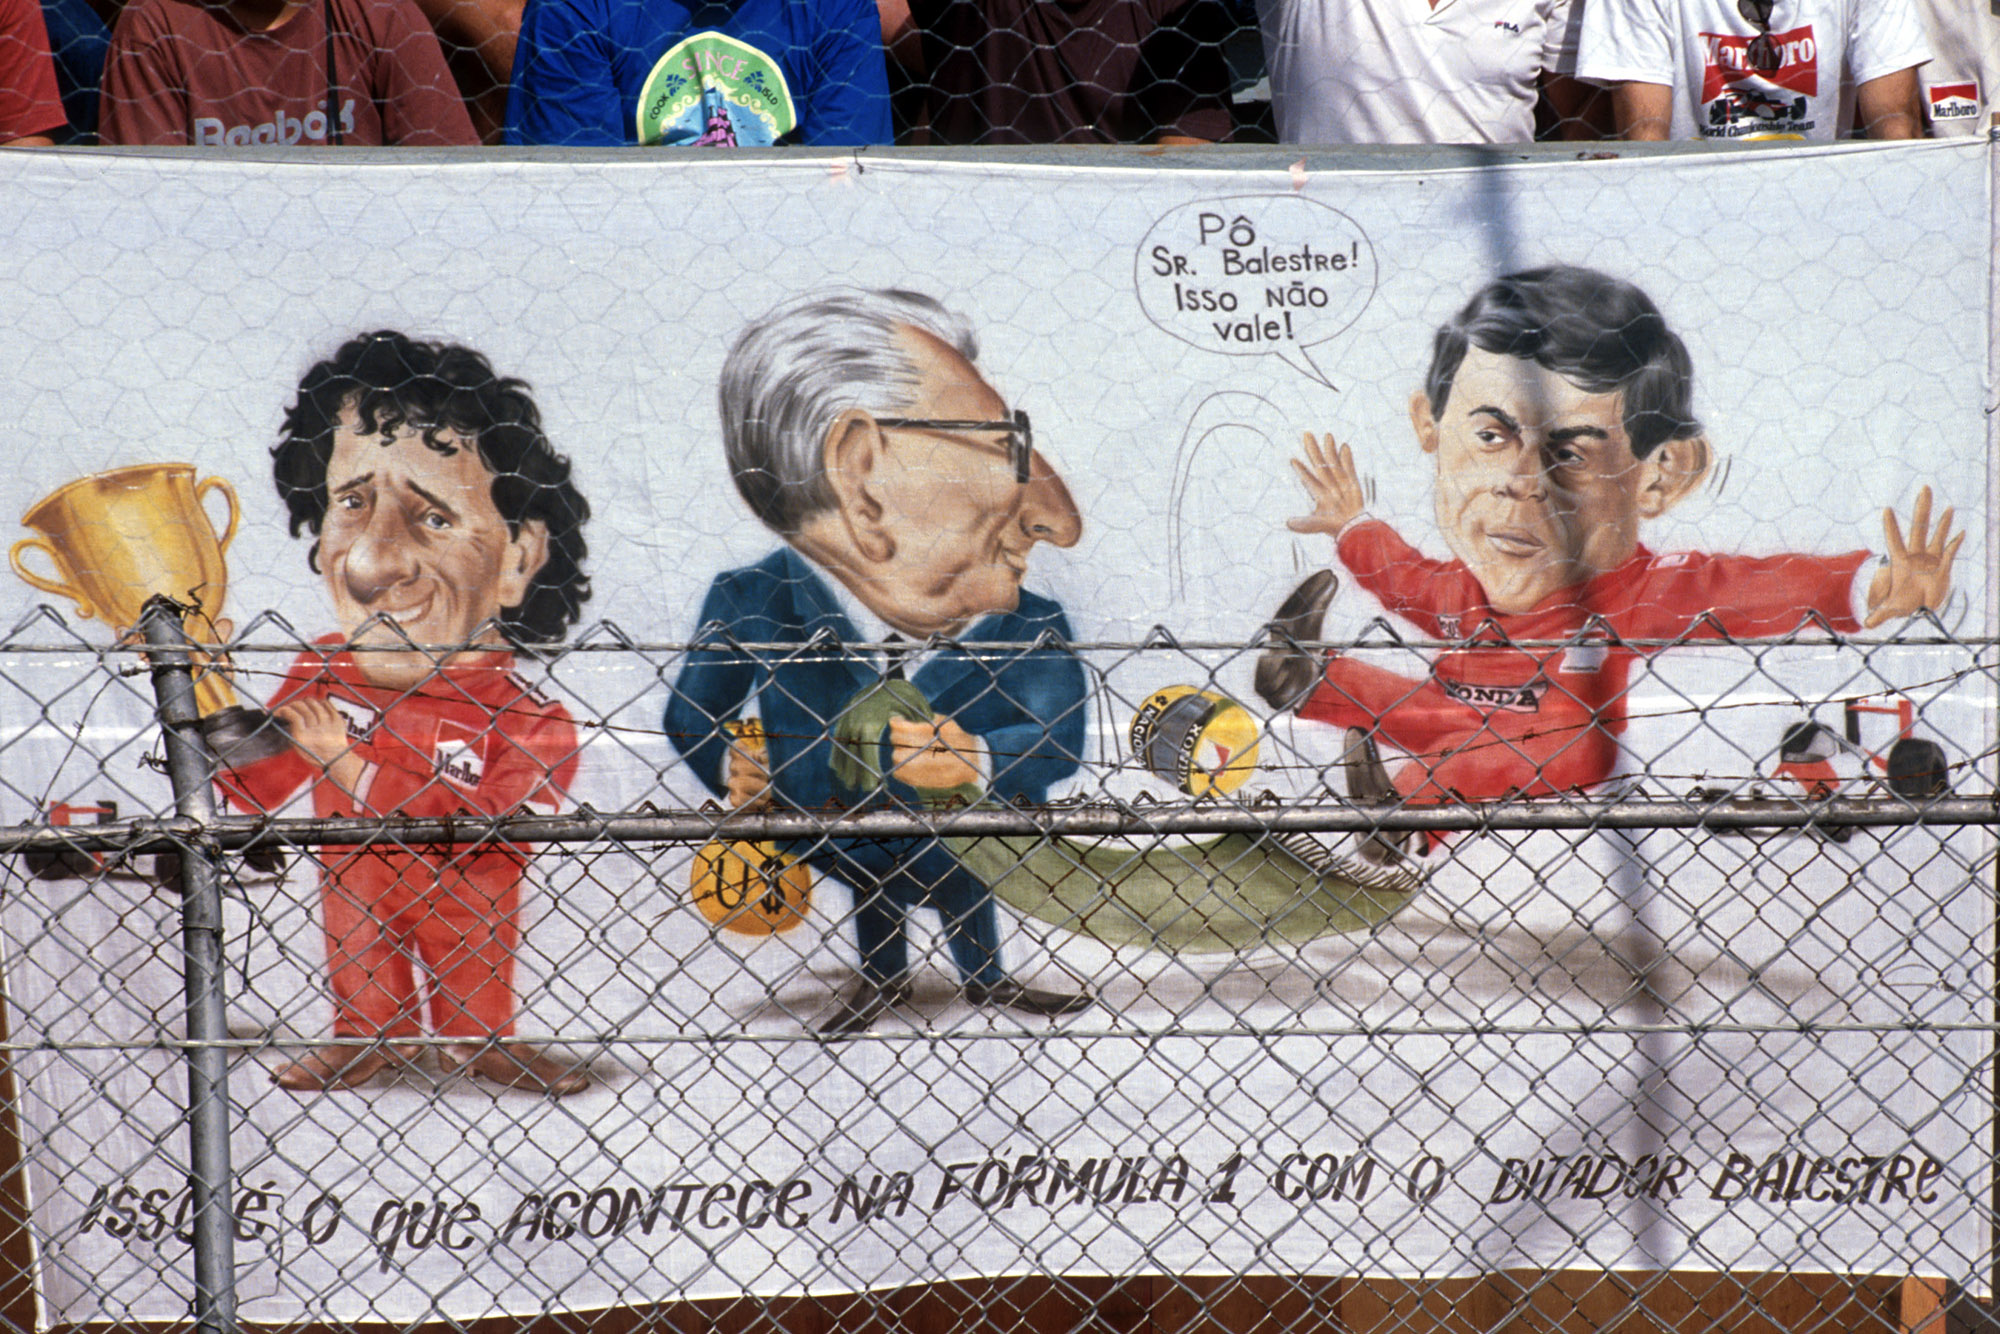 Fans at the 1990 Brazilian Grand Prix hang a banner showing Jean Marie Balestre pulling the rug from under Ayrton Senna